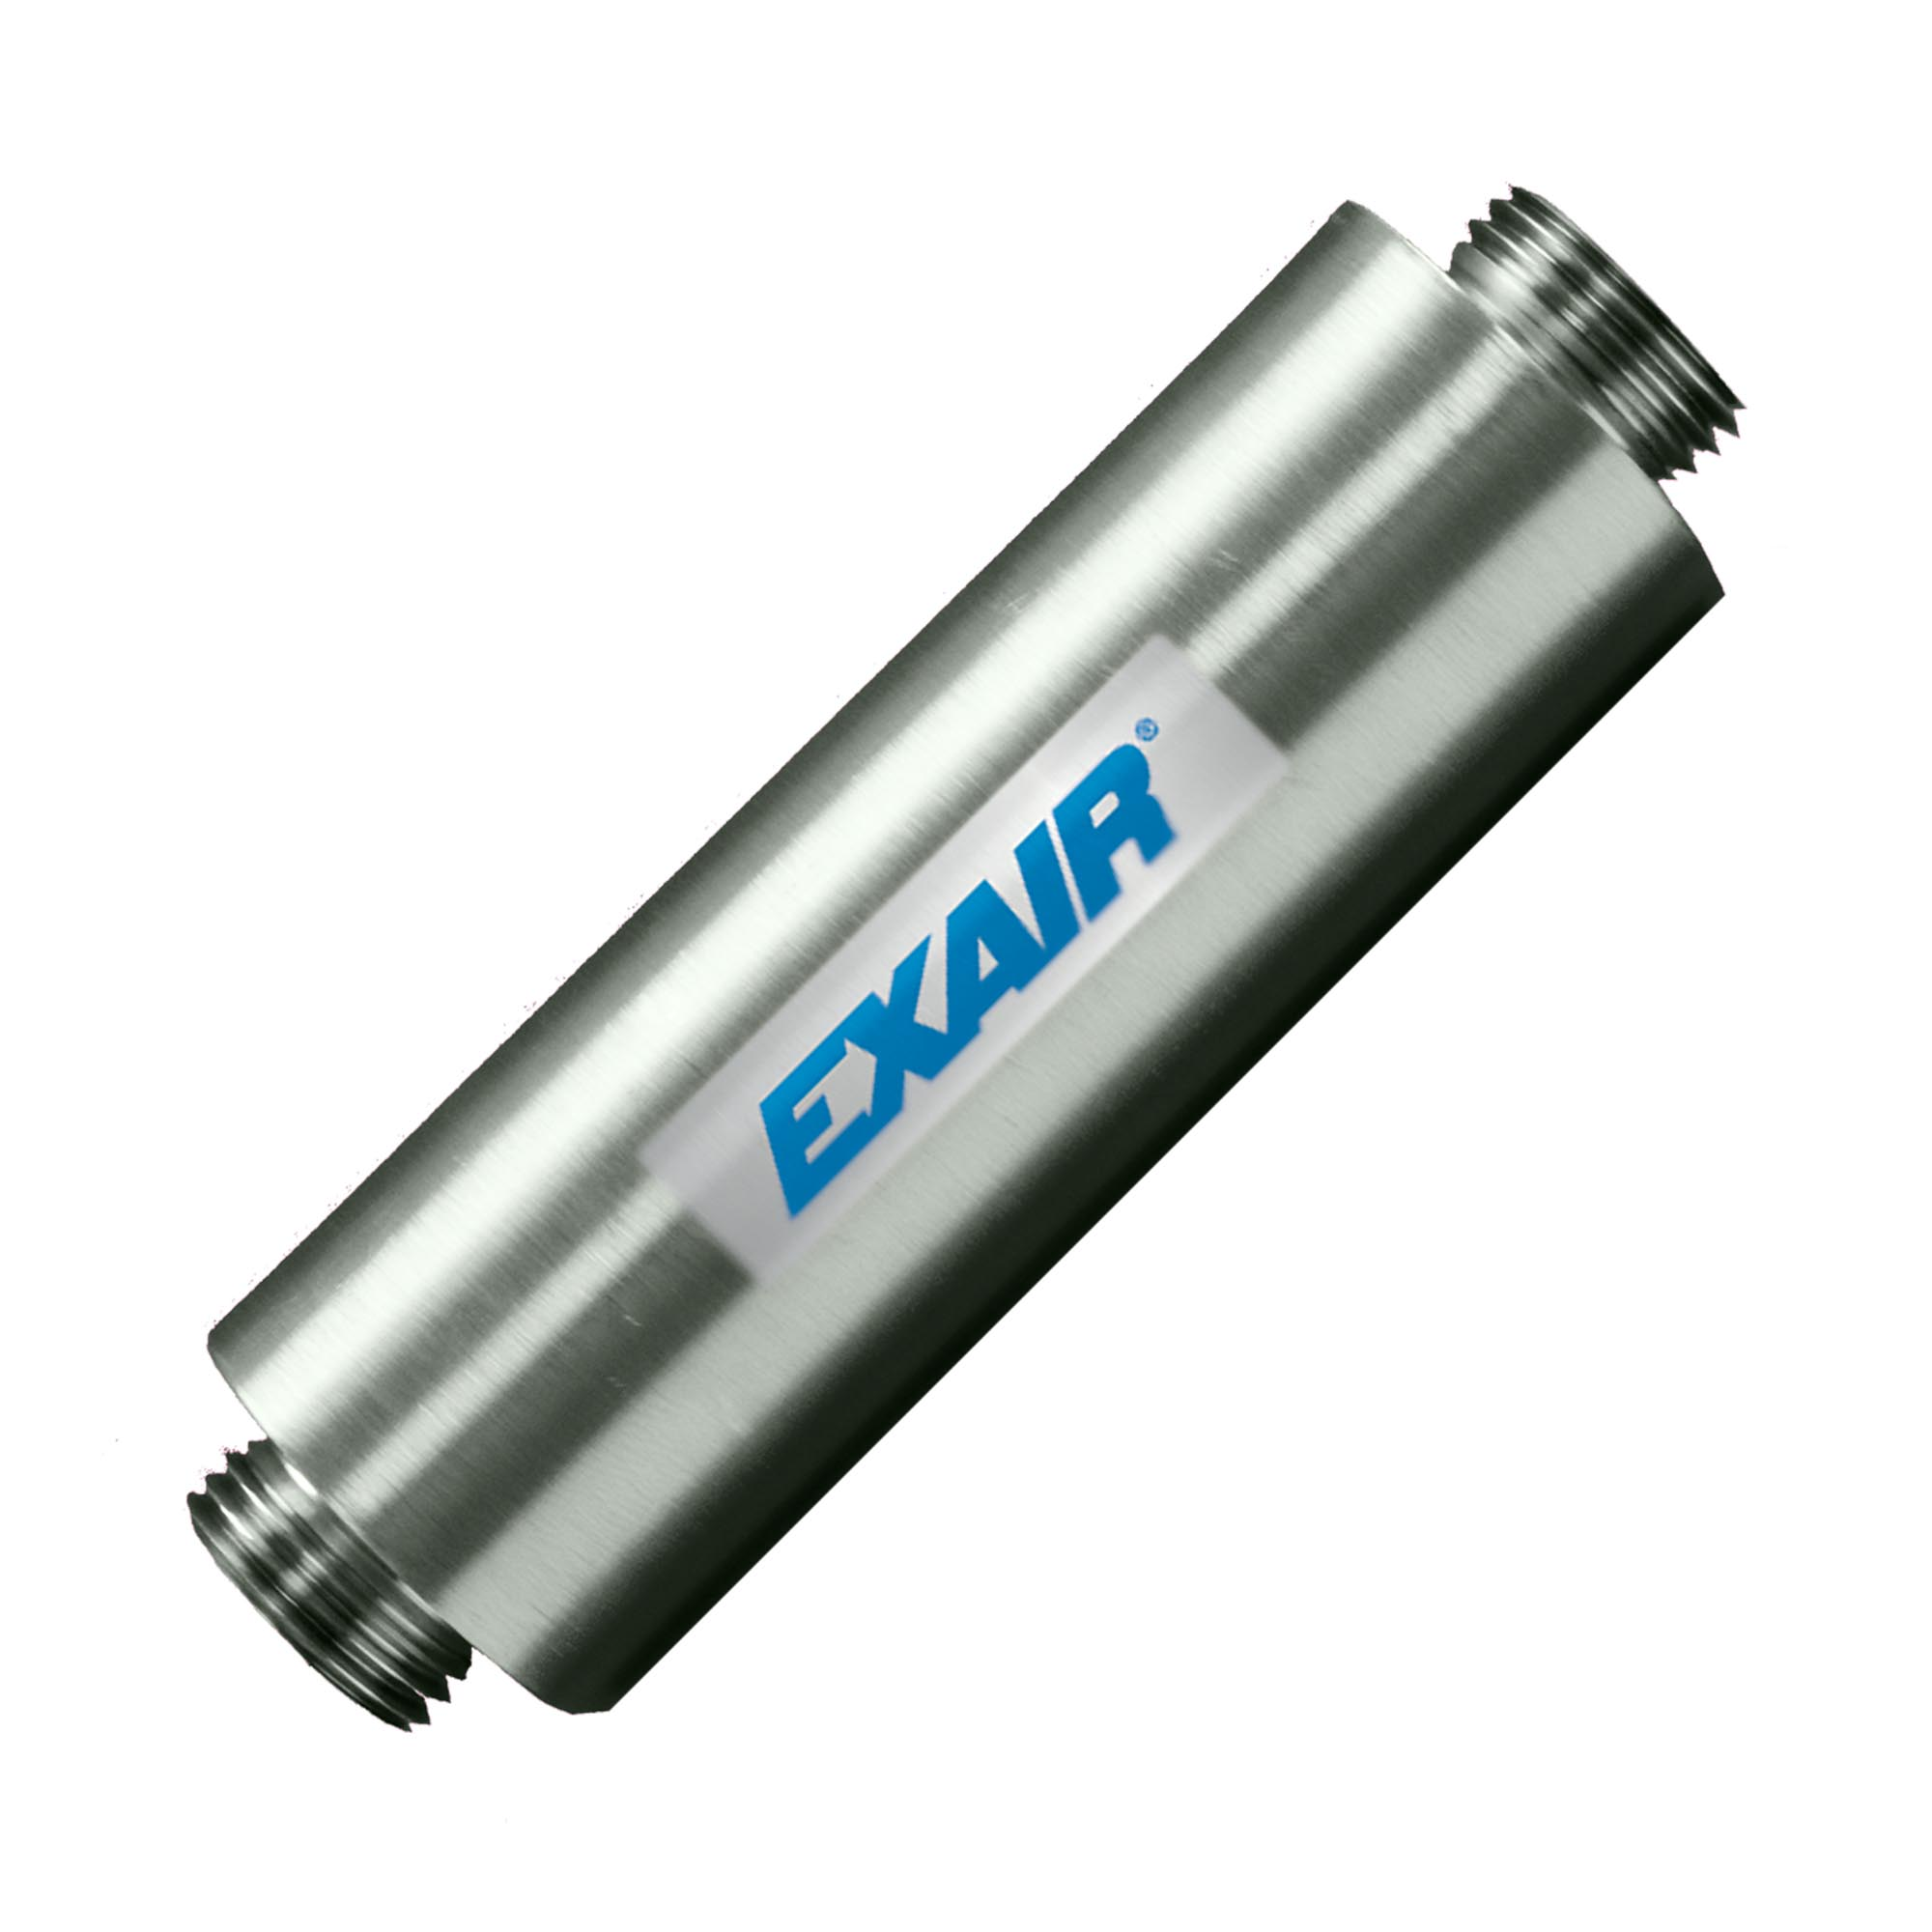 The Straight-through muffler produces the largest noise reduction.